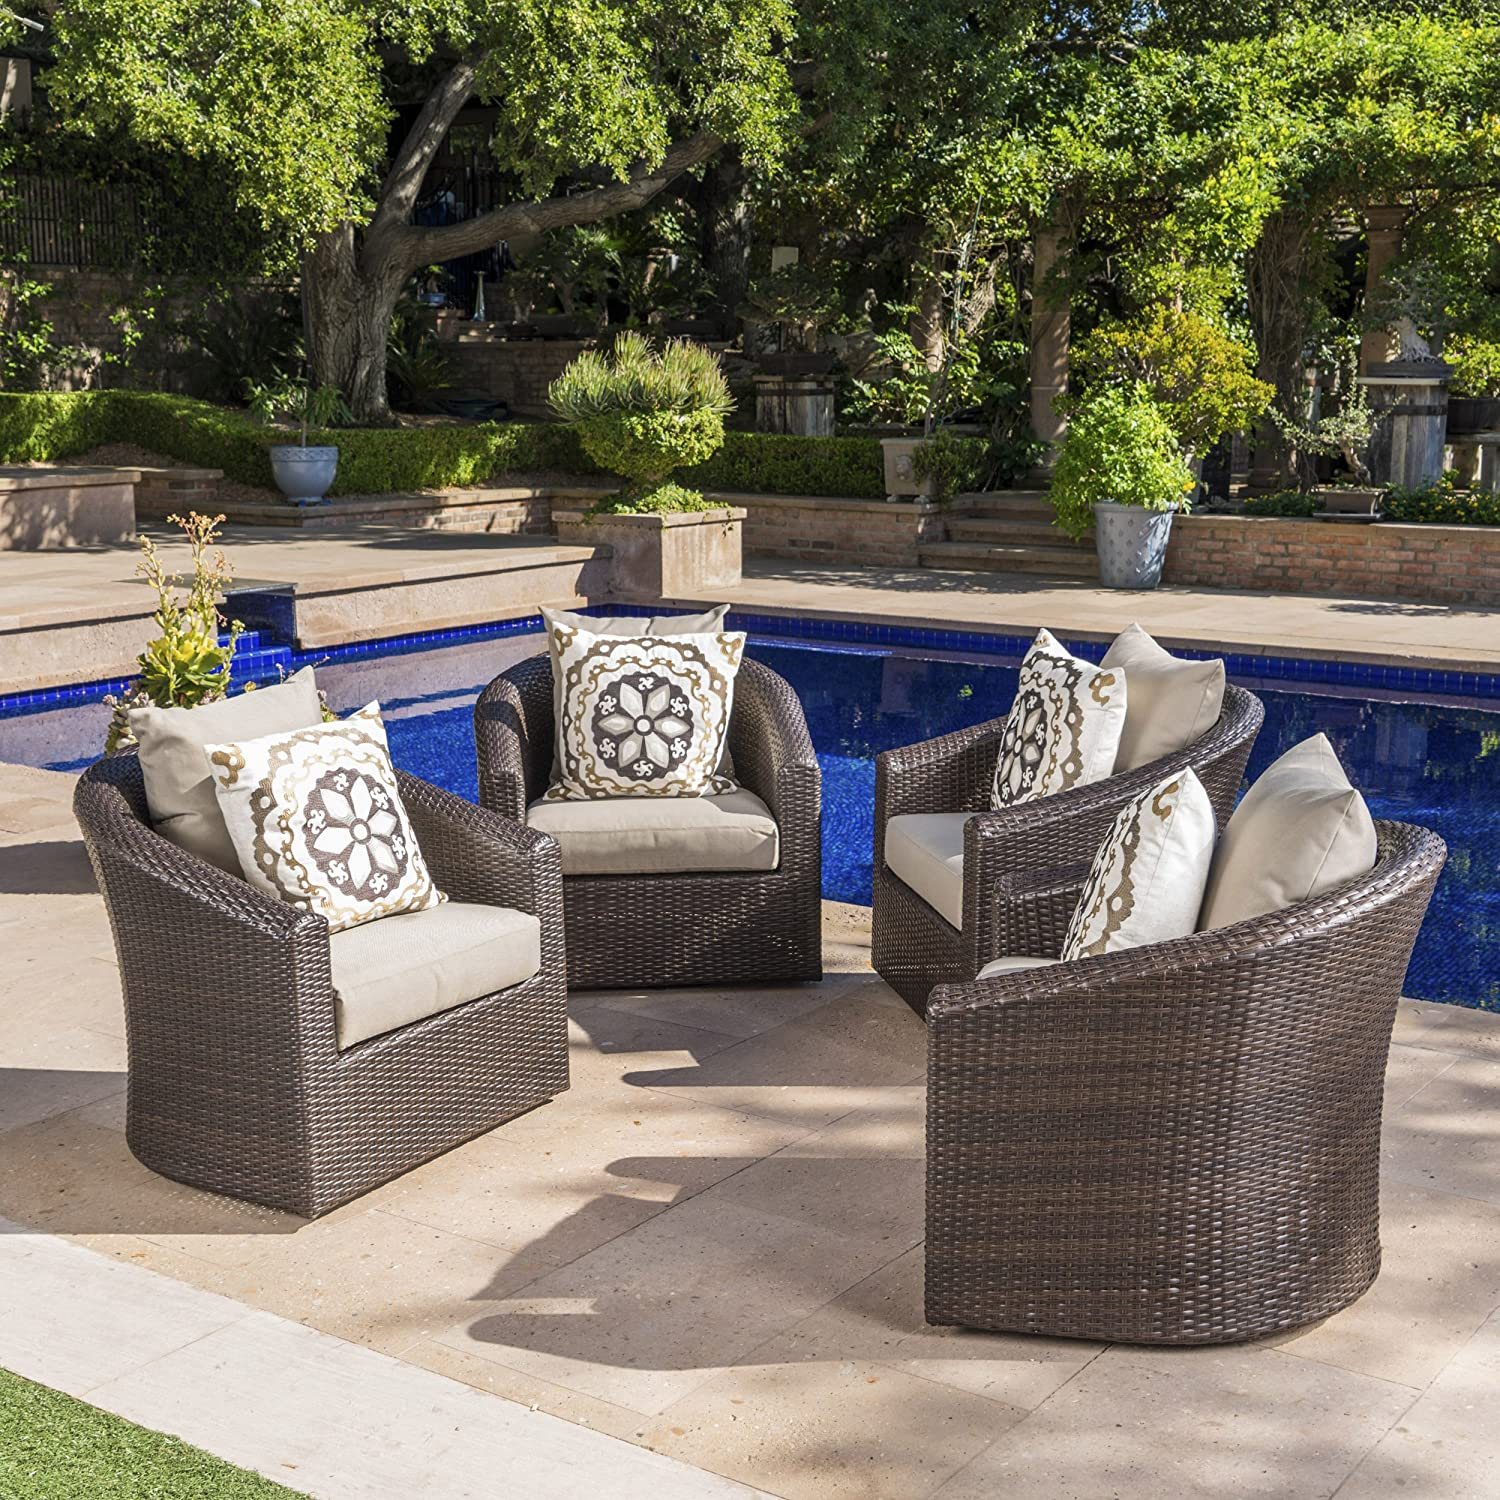 Dillard Outdoor Aluminum Framed Mix Brown Wicker Swivel Club Chair with Water Resistant Cushions Set o f4, Mix Khaki